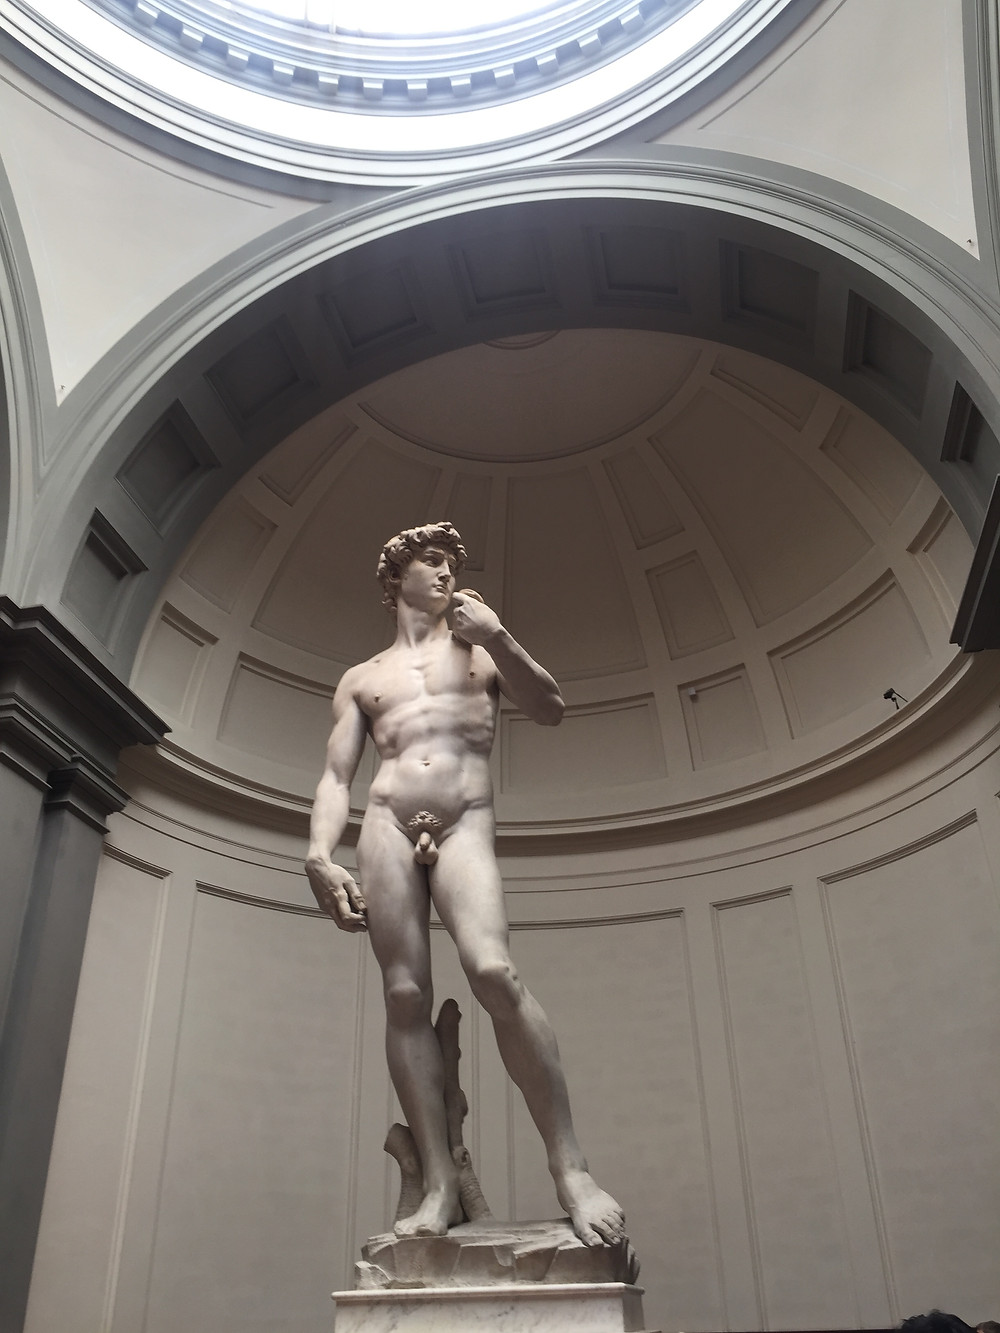 Michelangelo's David in the Accademia Gallery in Florence Italy